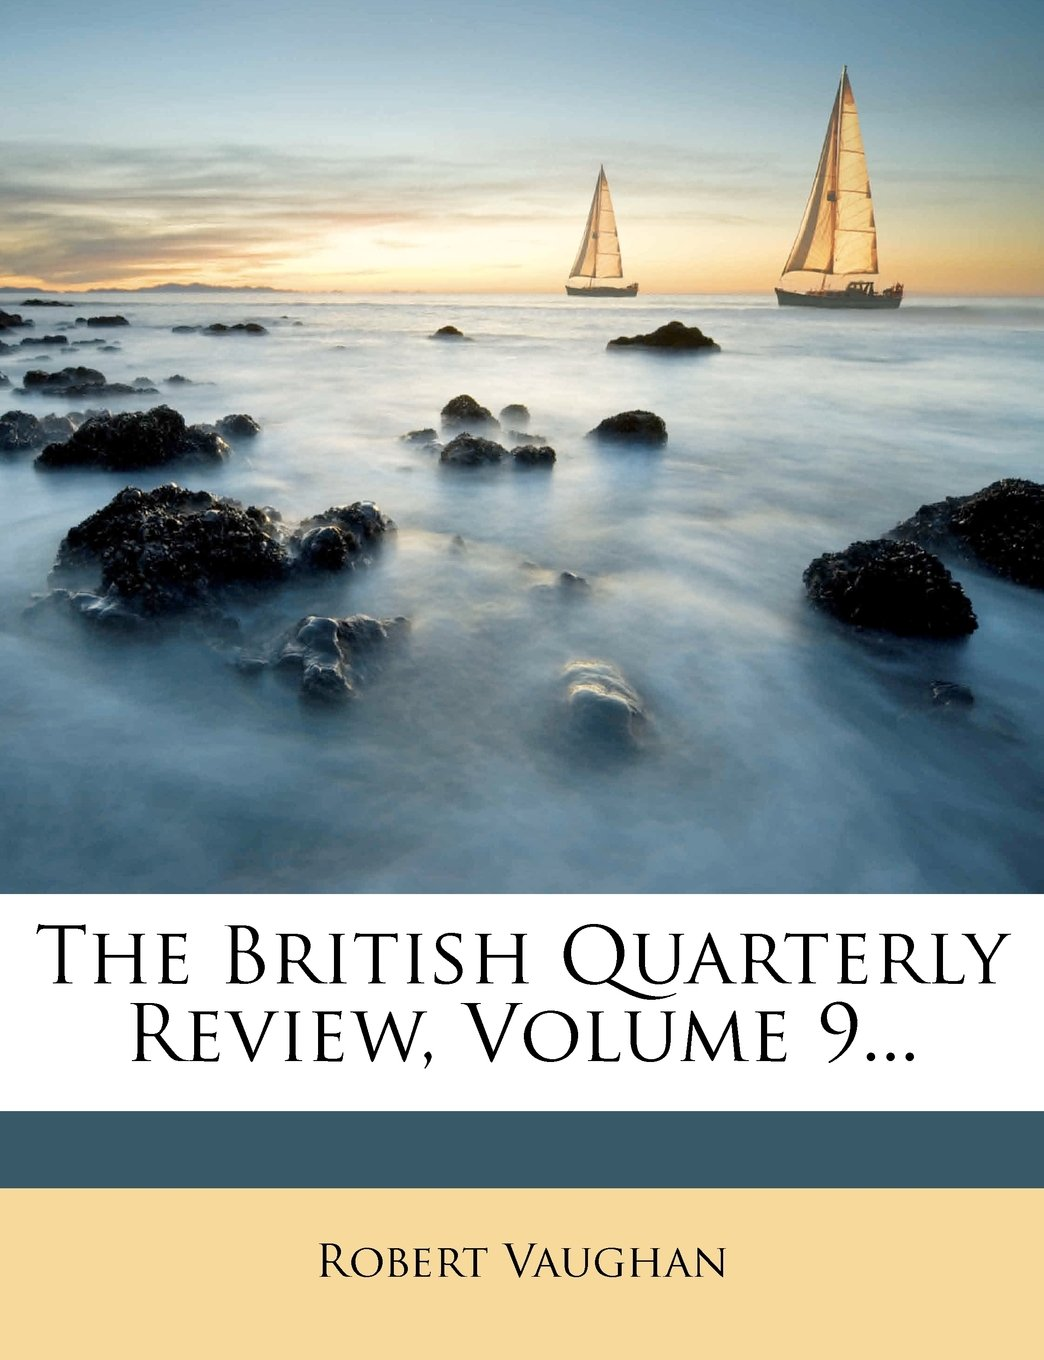 The British Quarterly Review, Volume 9... ebook